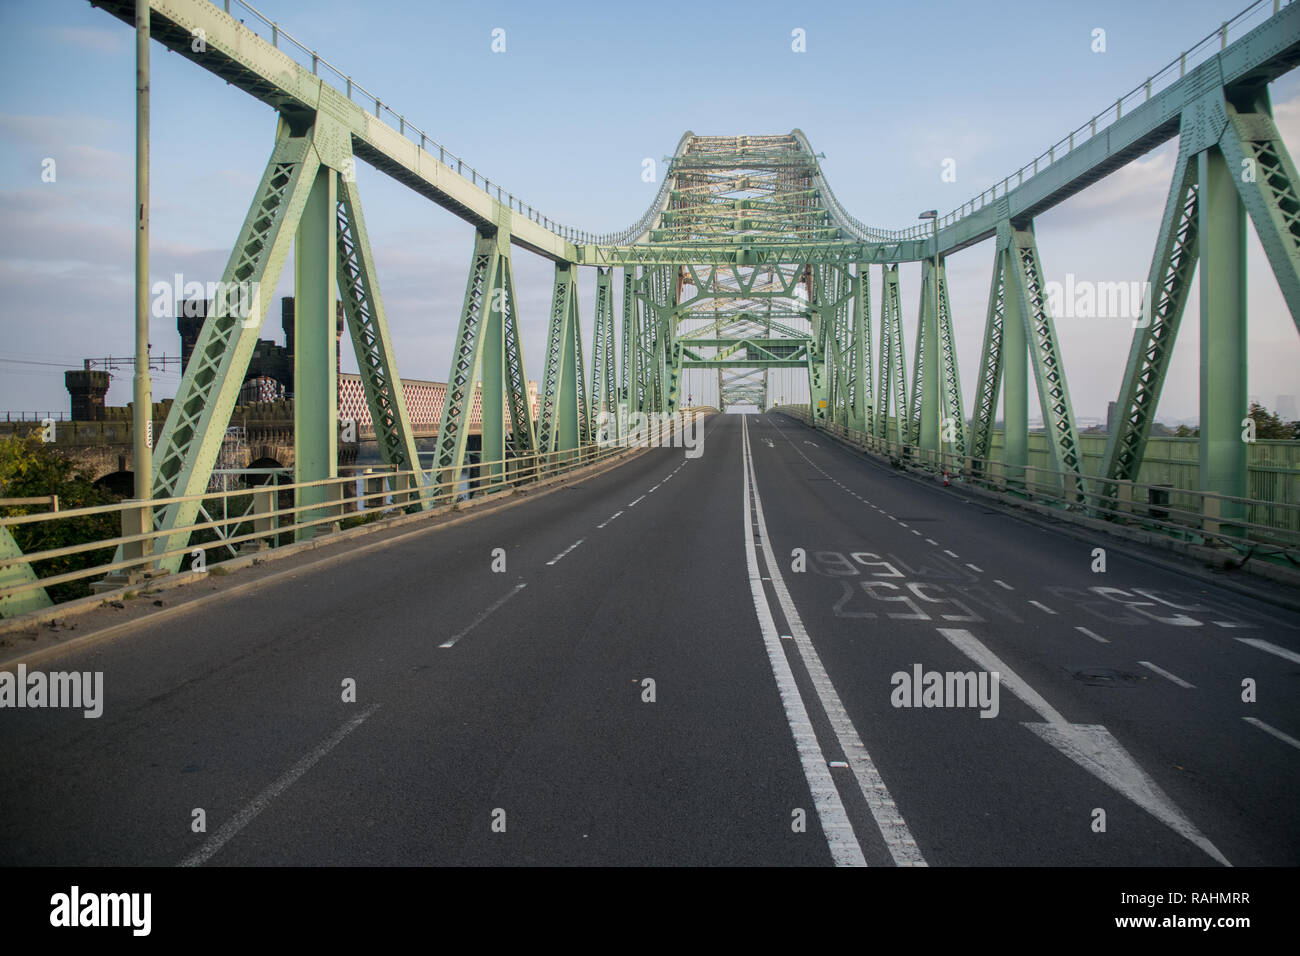 Silver Jubilee Bridge spanning Halton (Widnes and Runcorn), a through arch bridge constructed in 1961.  Currently closed for renovation until 2020 - Stock Image